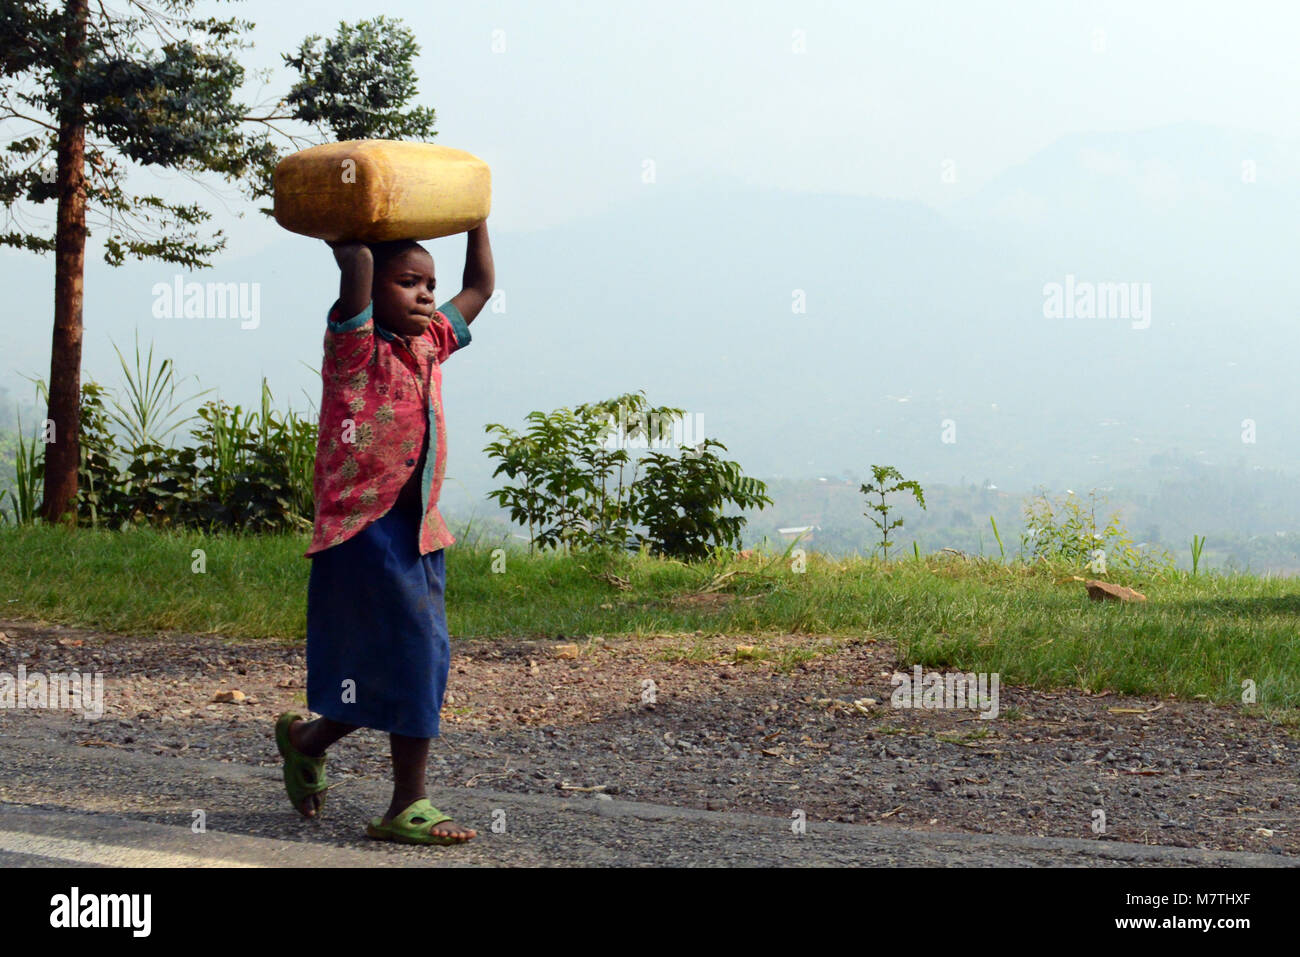 A girl carrying a jerrycan of water on her head. - Stock Image